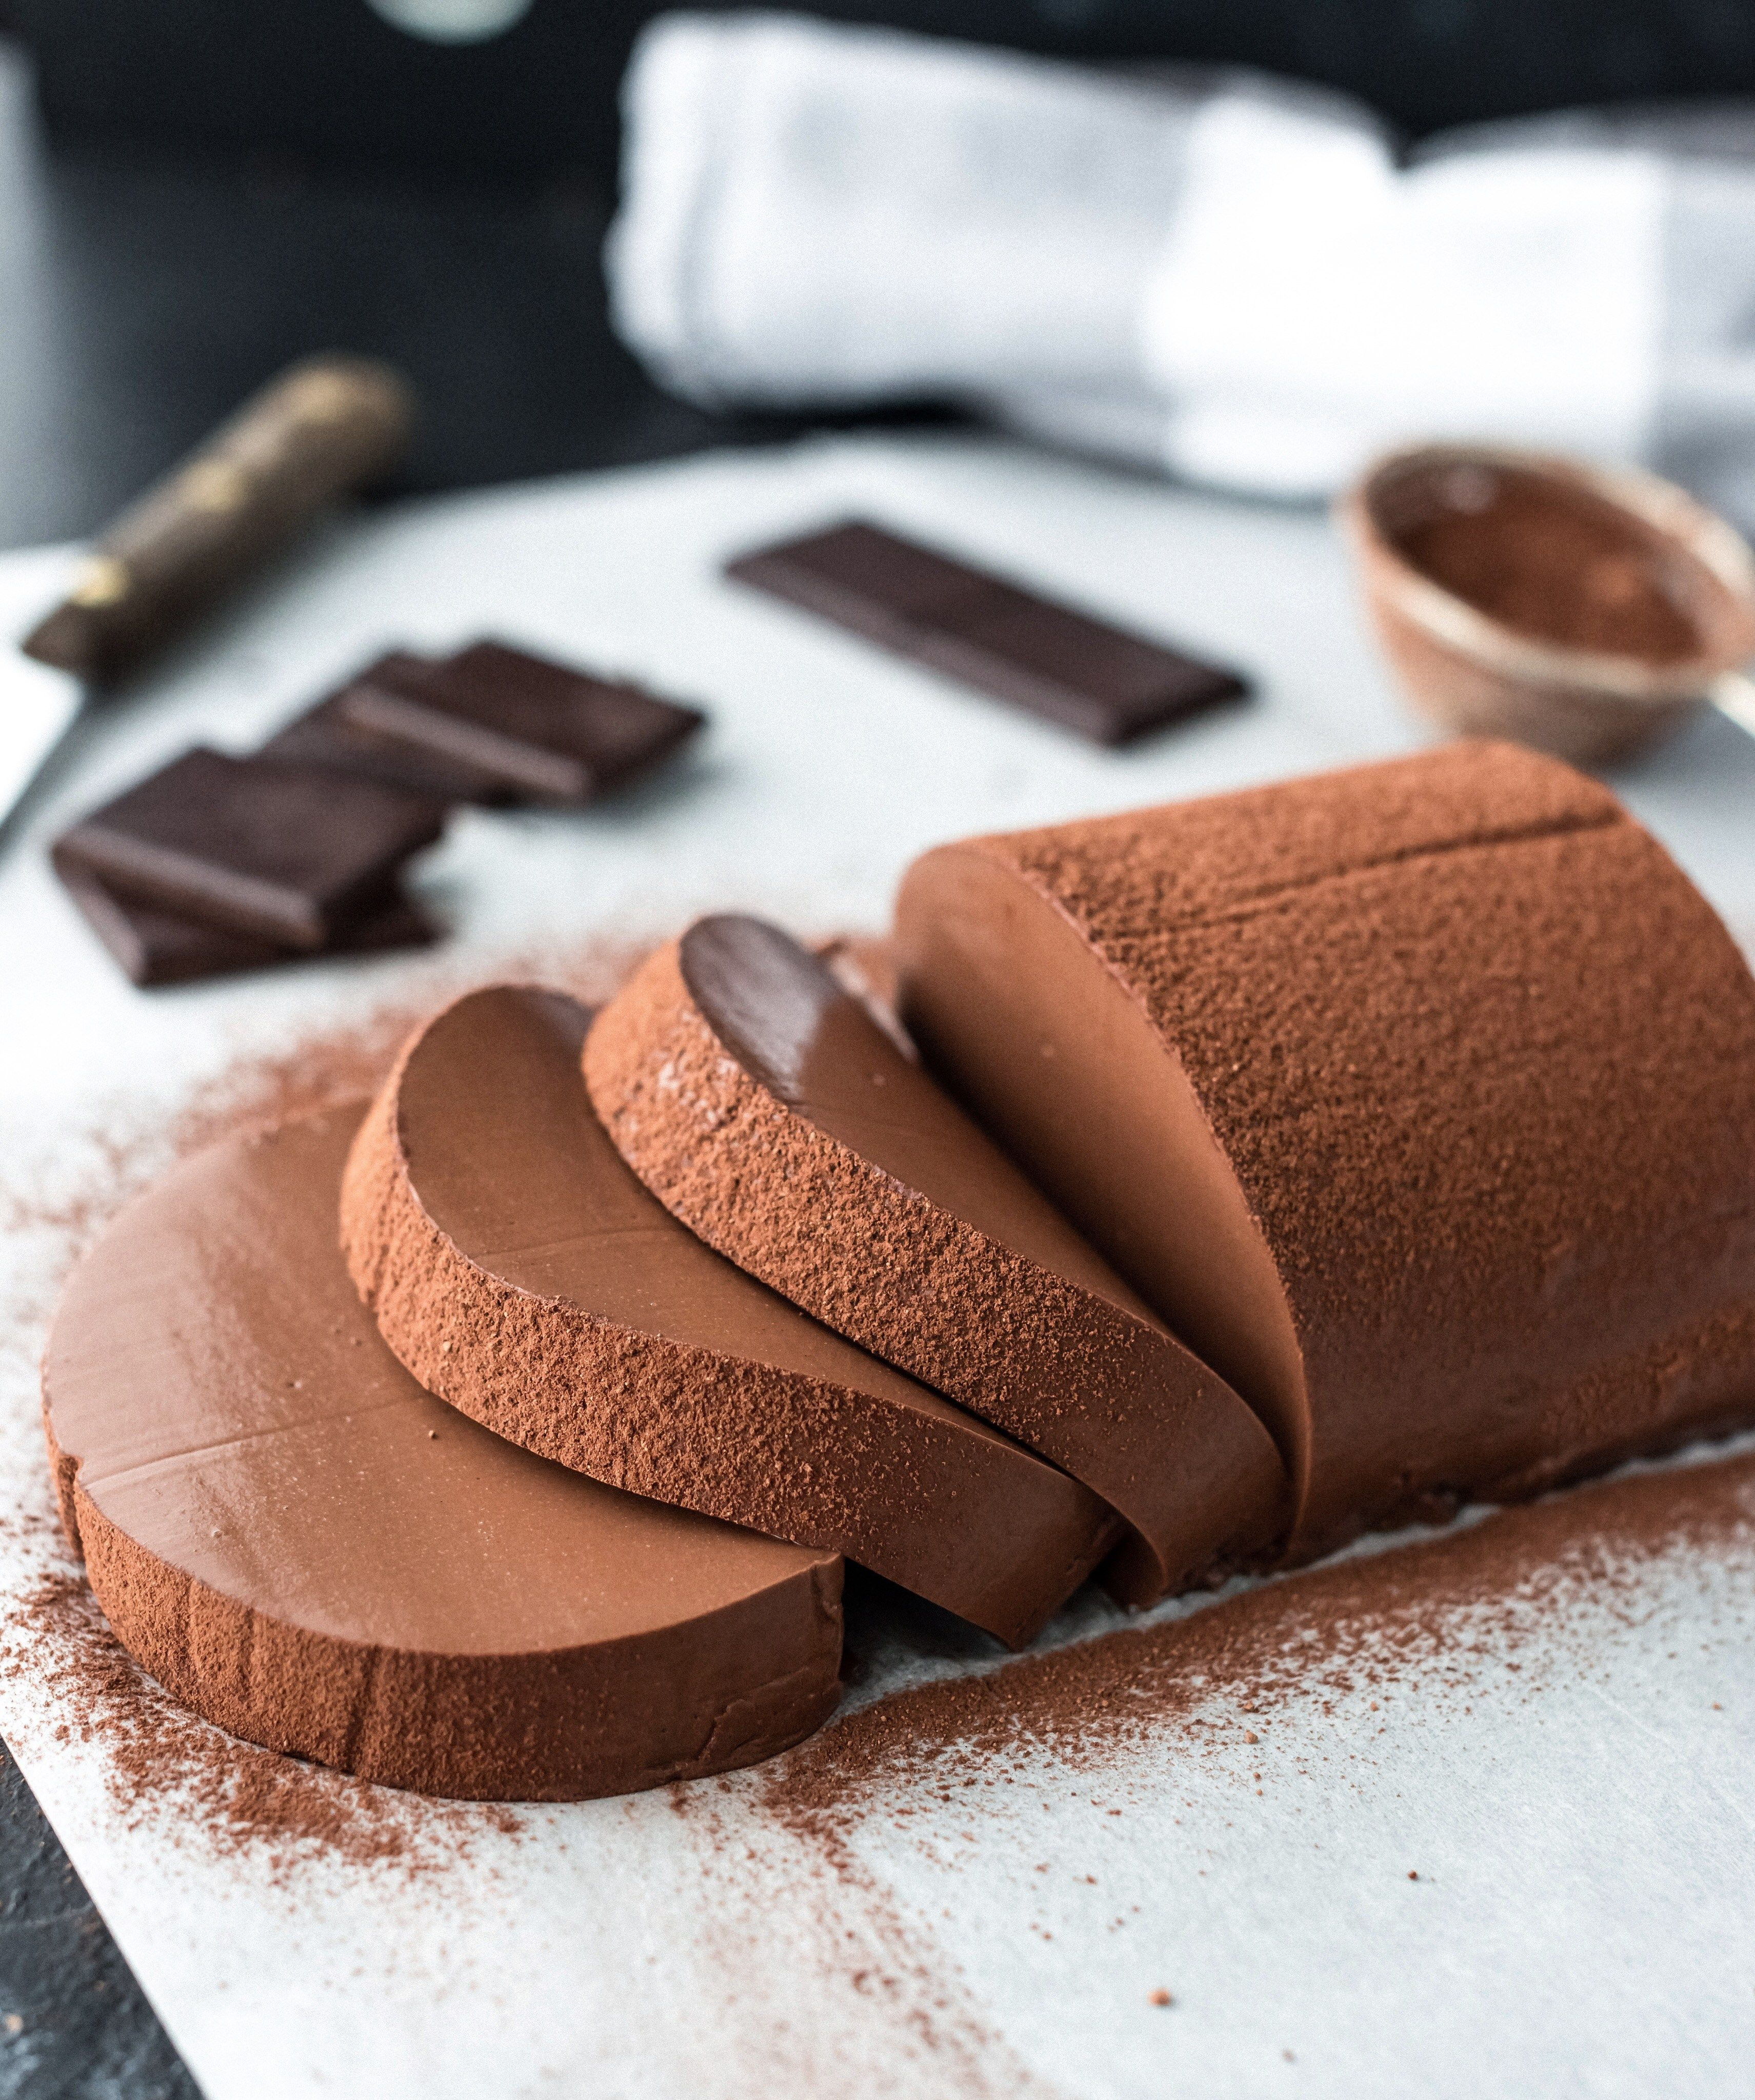 Double Chocolate Pudding Cake - Carlo Cao | Foodbl